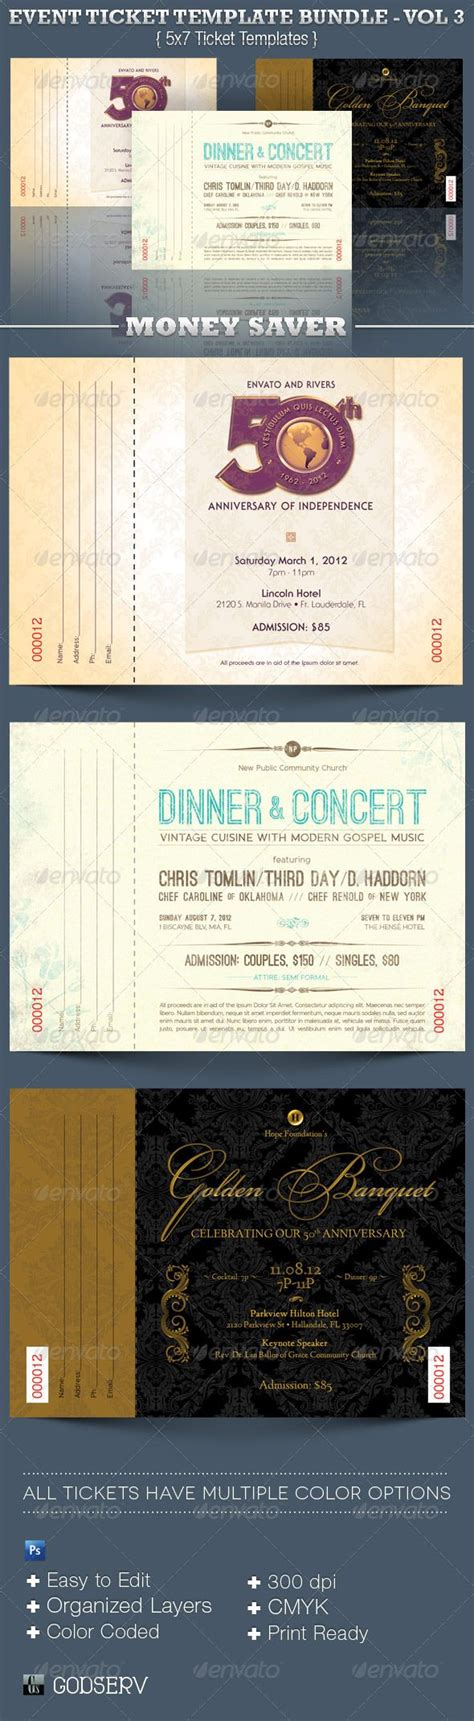 ticket templates for photoshop event ticket template bundle volume 3 fonts church and